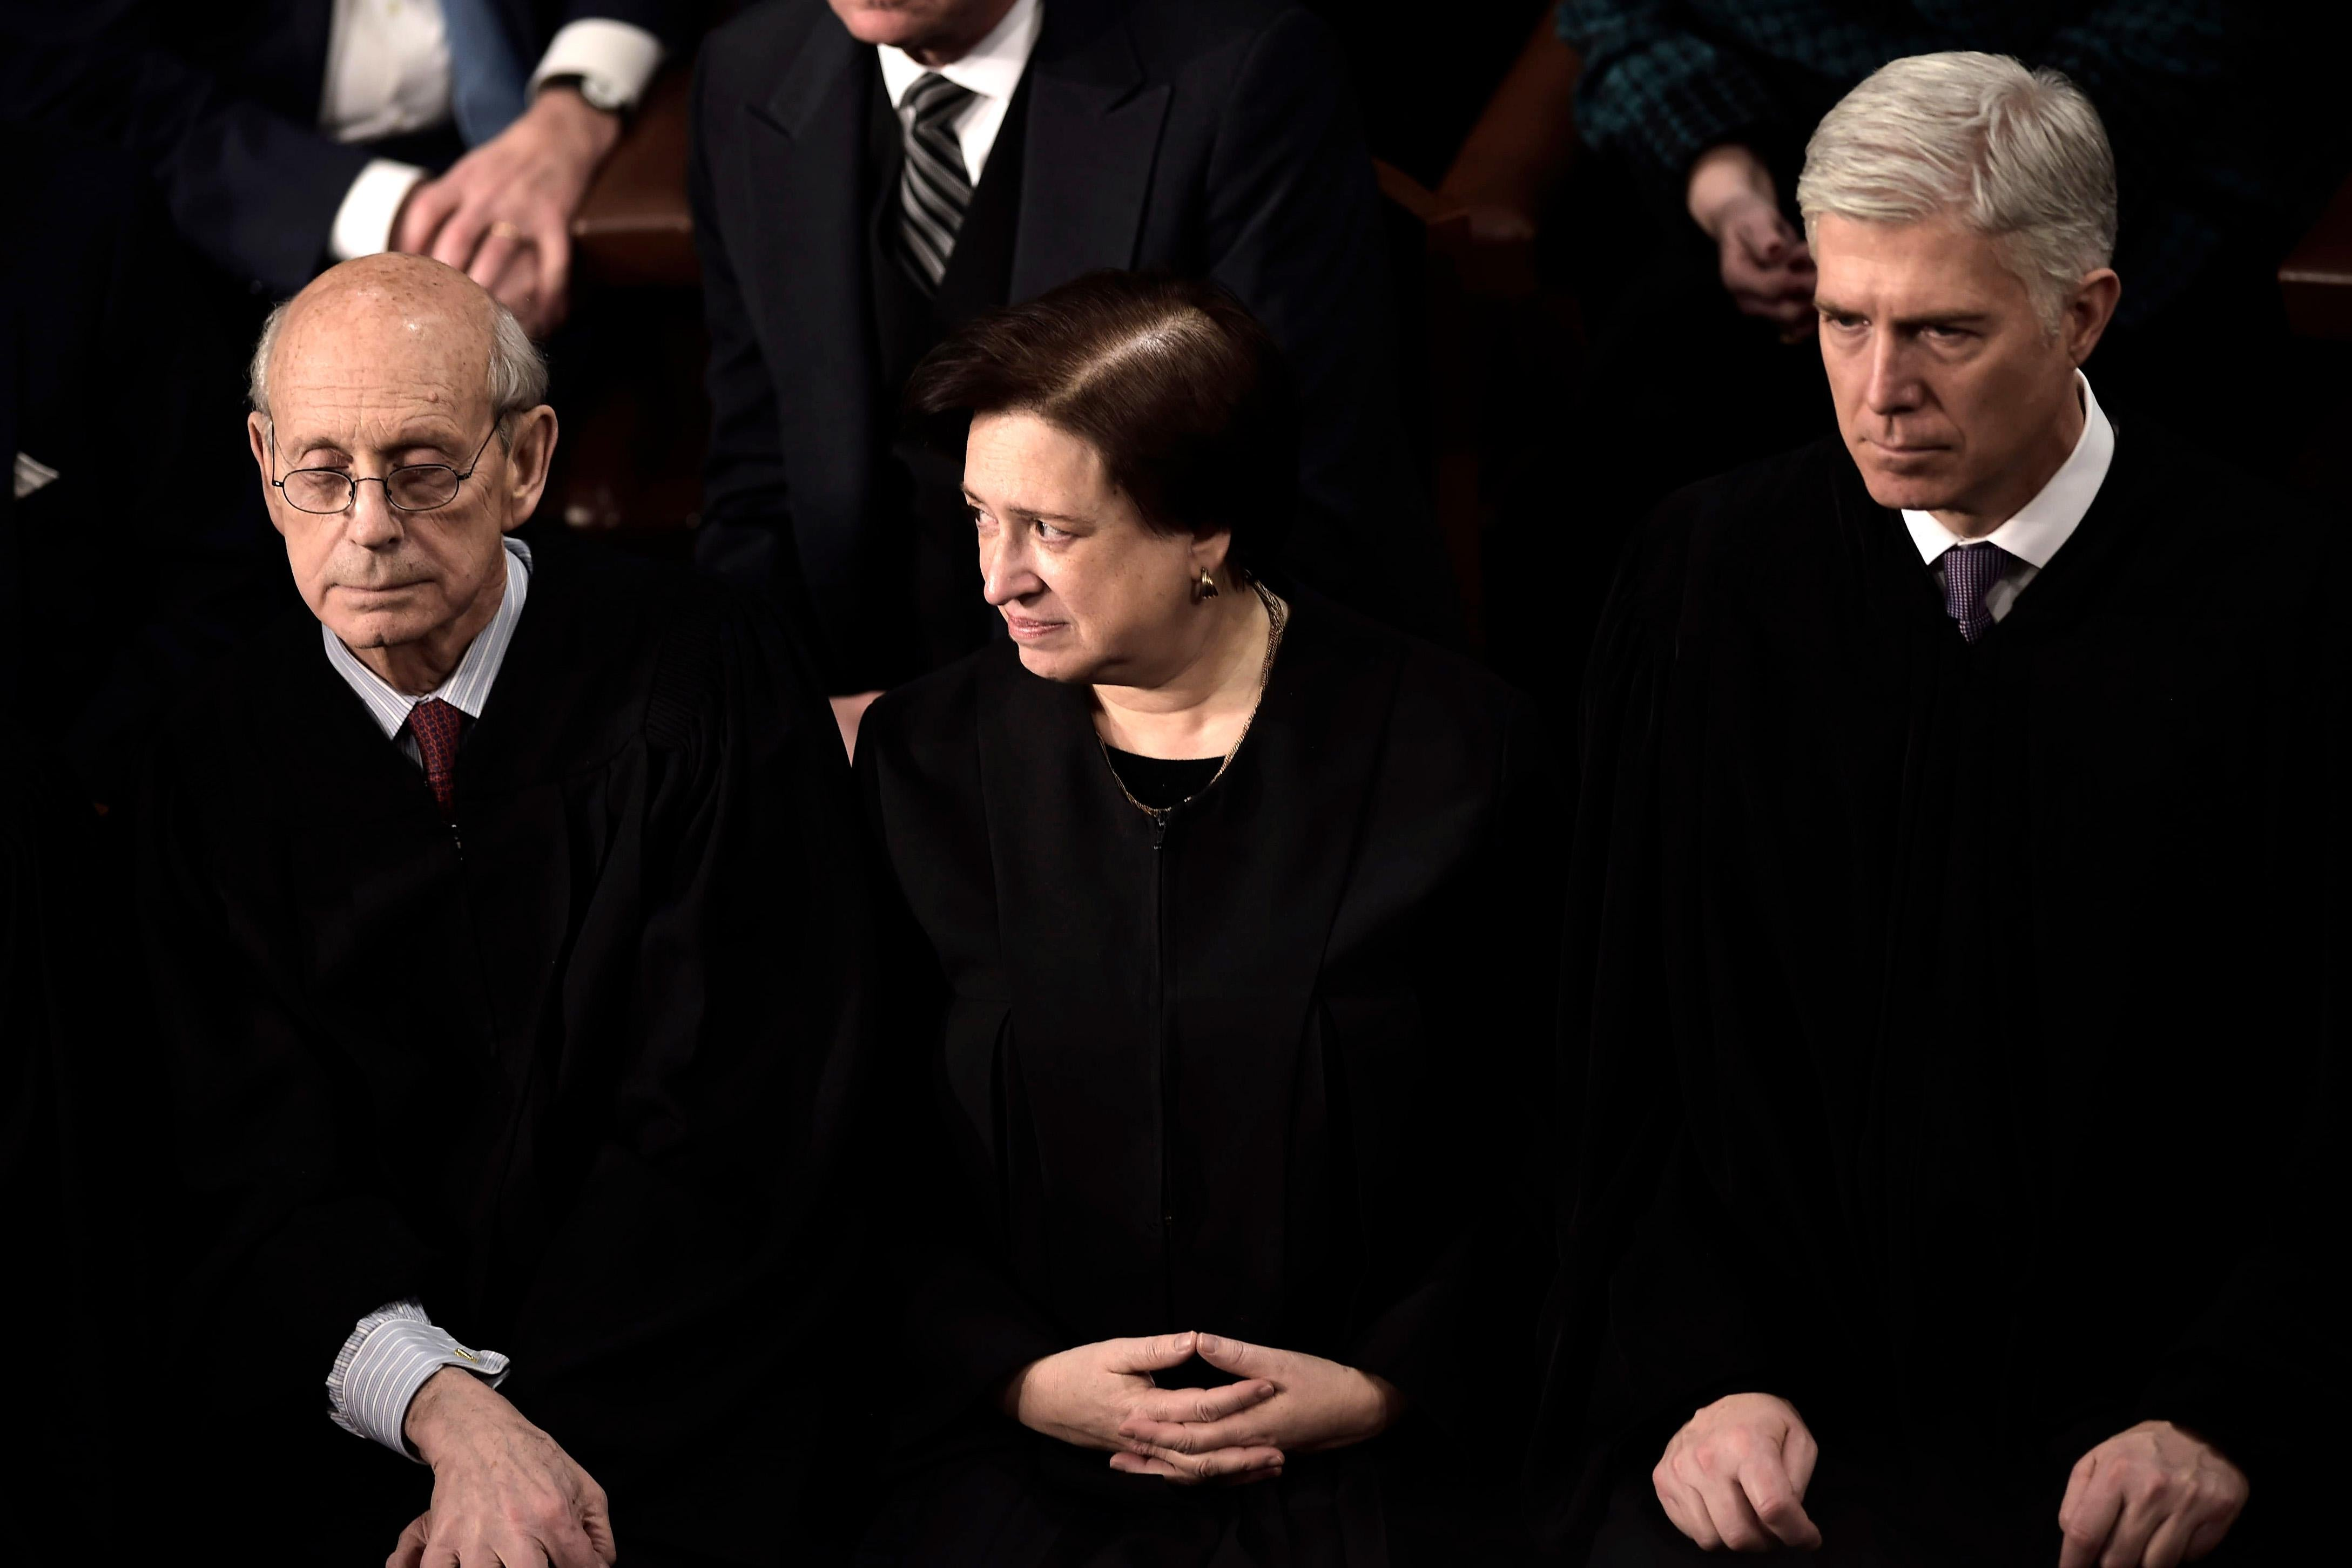 Supreme Court Justices Stephen G. Breyer, Elena Kagan, and Neil Gorsuch.